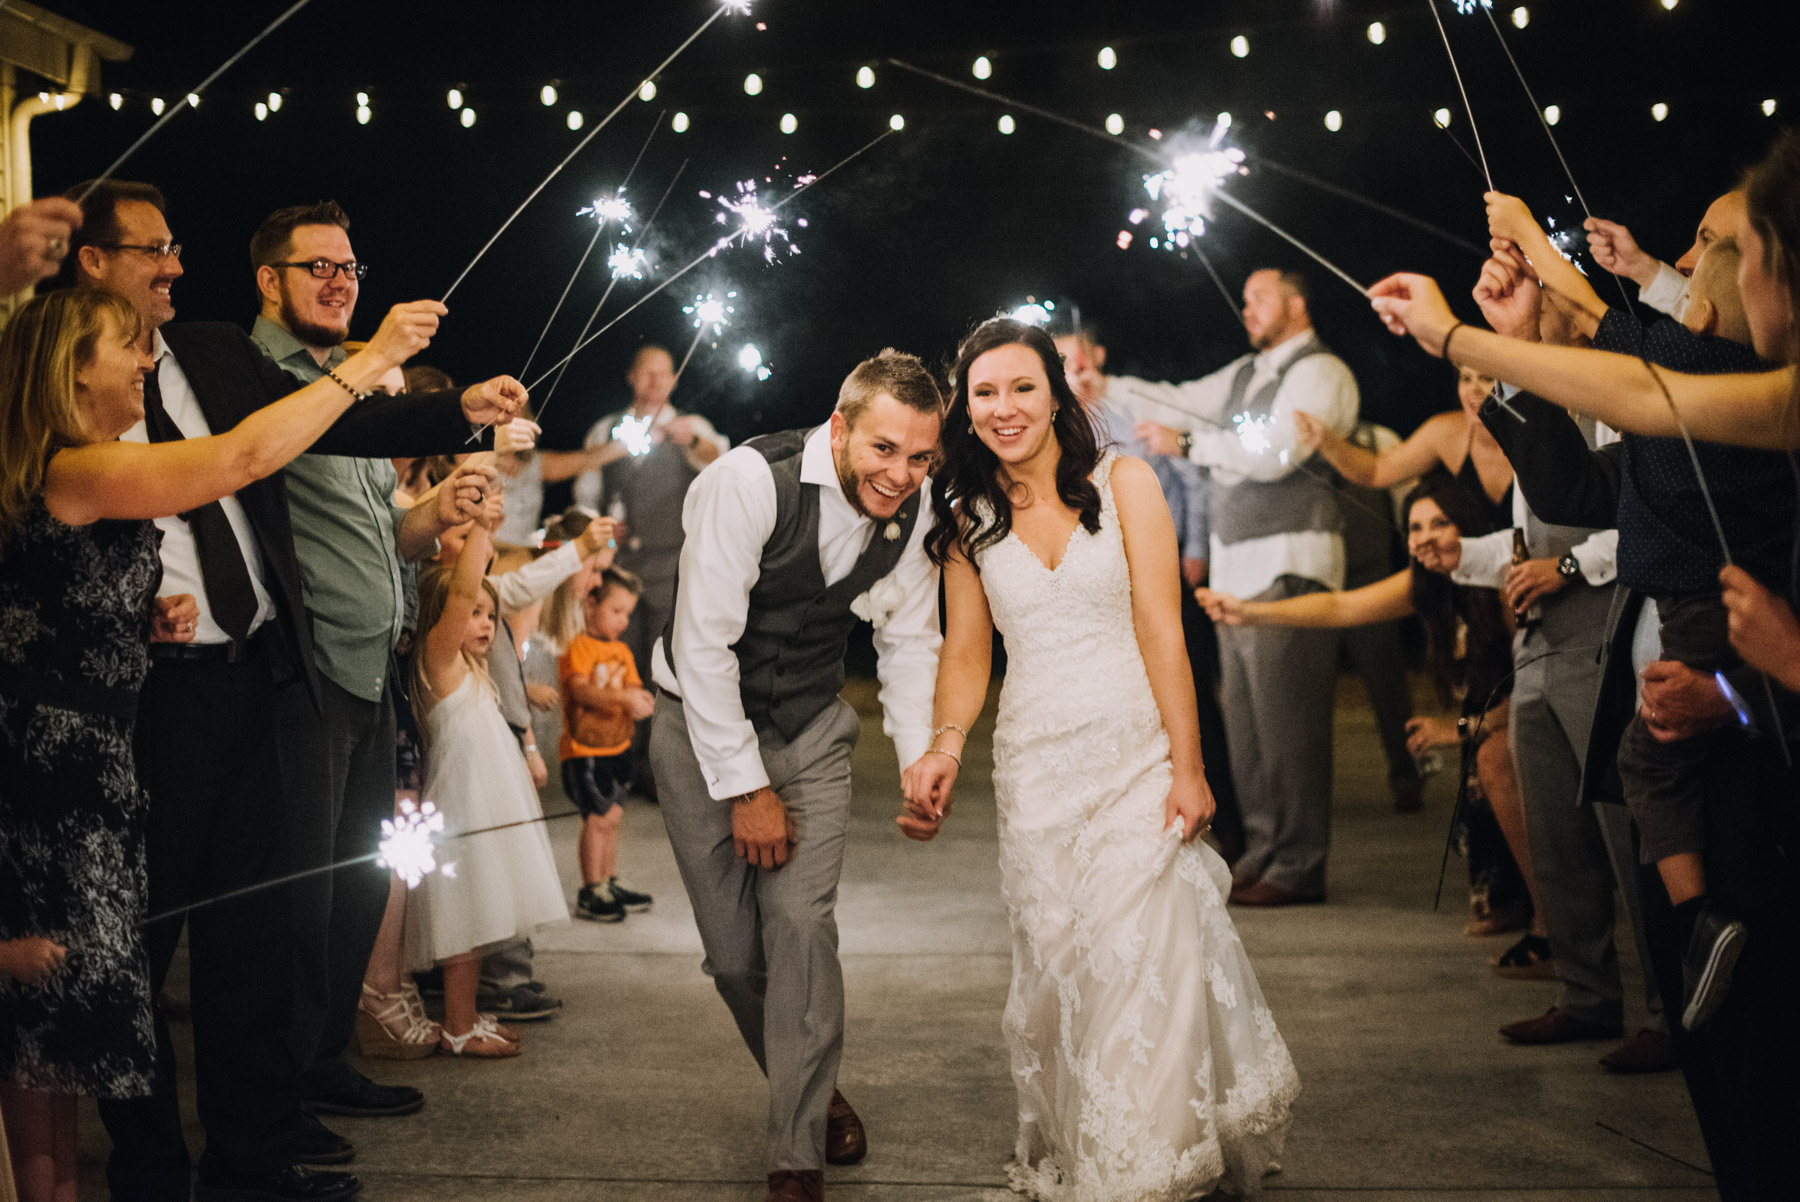 Chris and Lynsey running down between their friends for a sparkler exit at their Flying Horse Ranch Wedding!